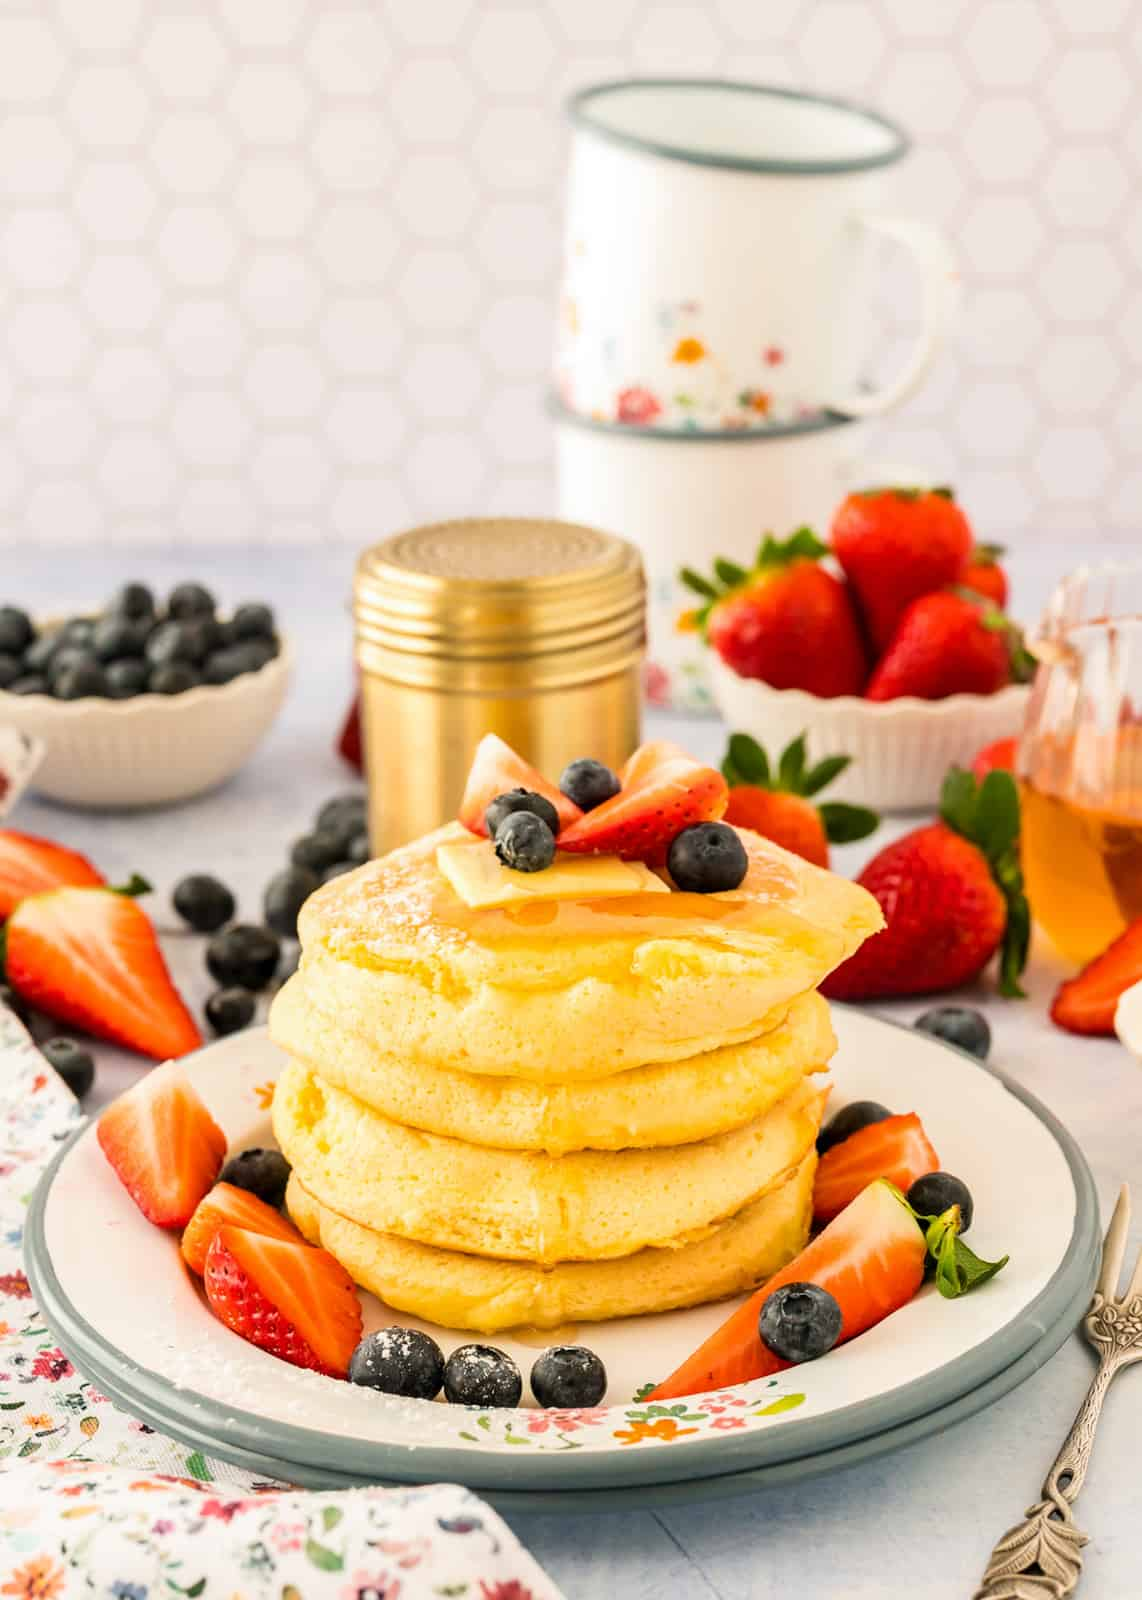 Stacked Soufflé Pancakes on plate with syrup and fruit